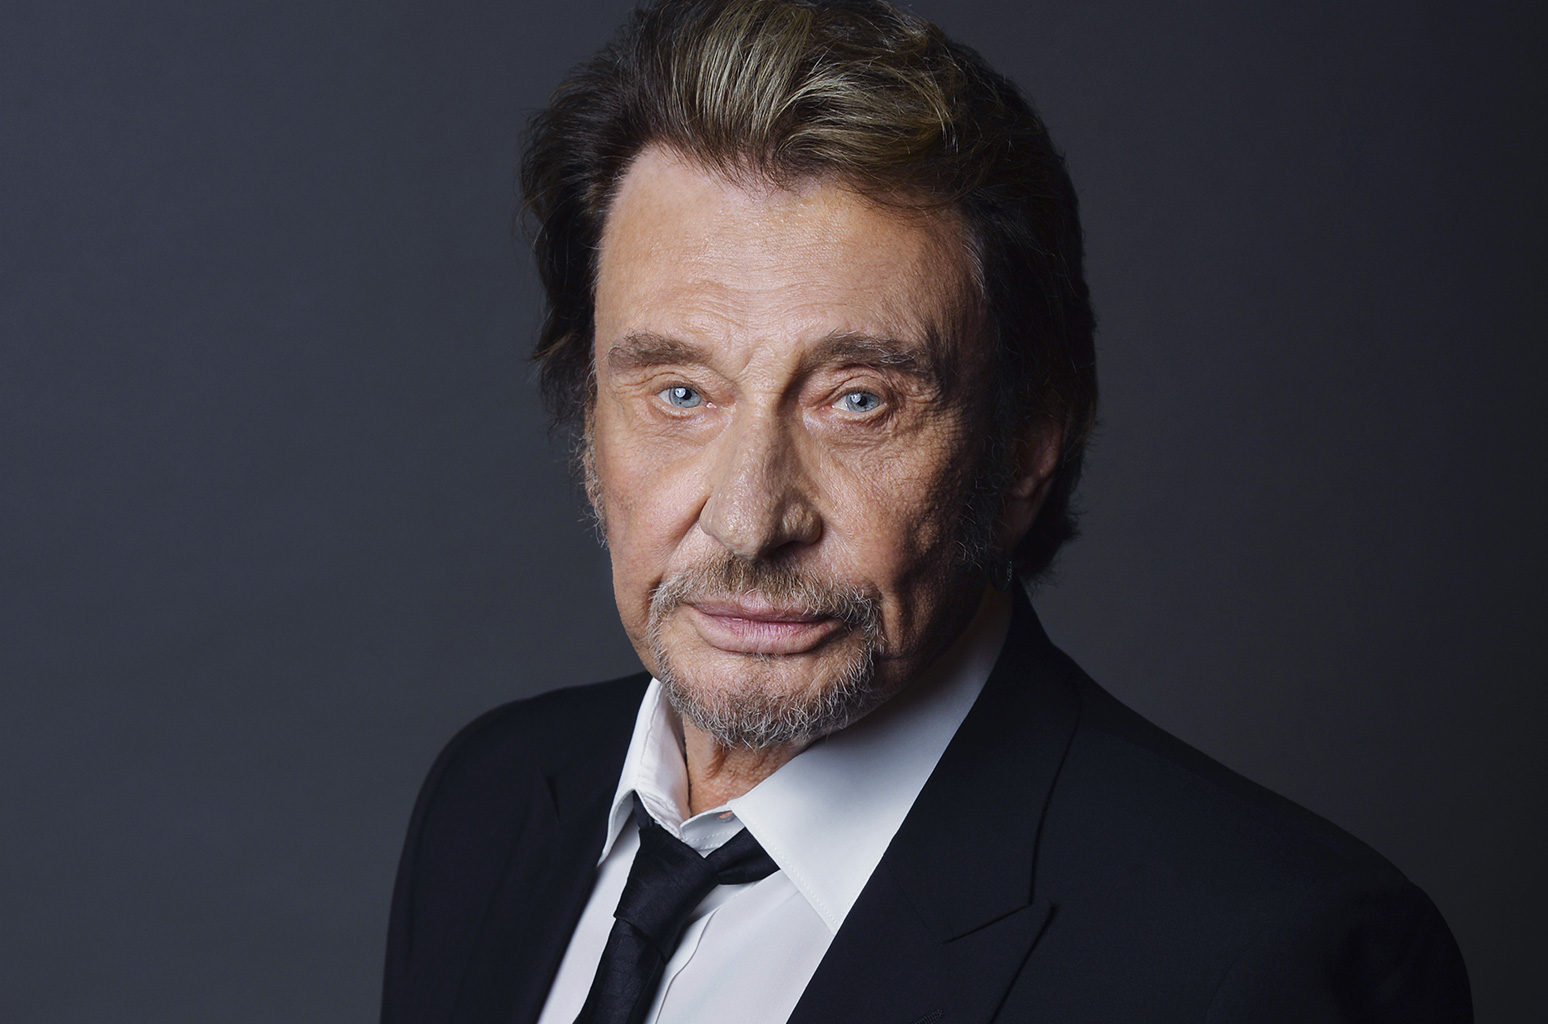 La rock star Johnny Hallyday, mort ce mardi 5 décembre. Photo: Billboard.